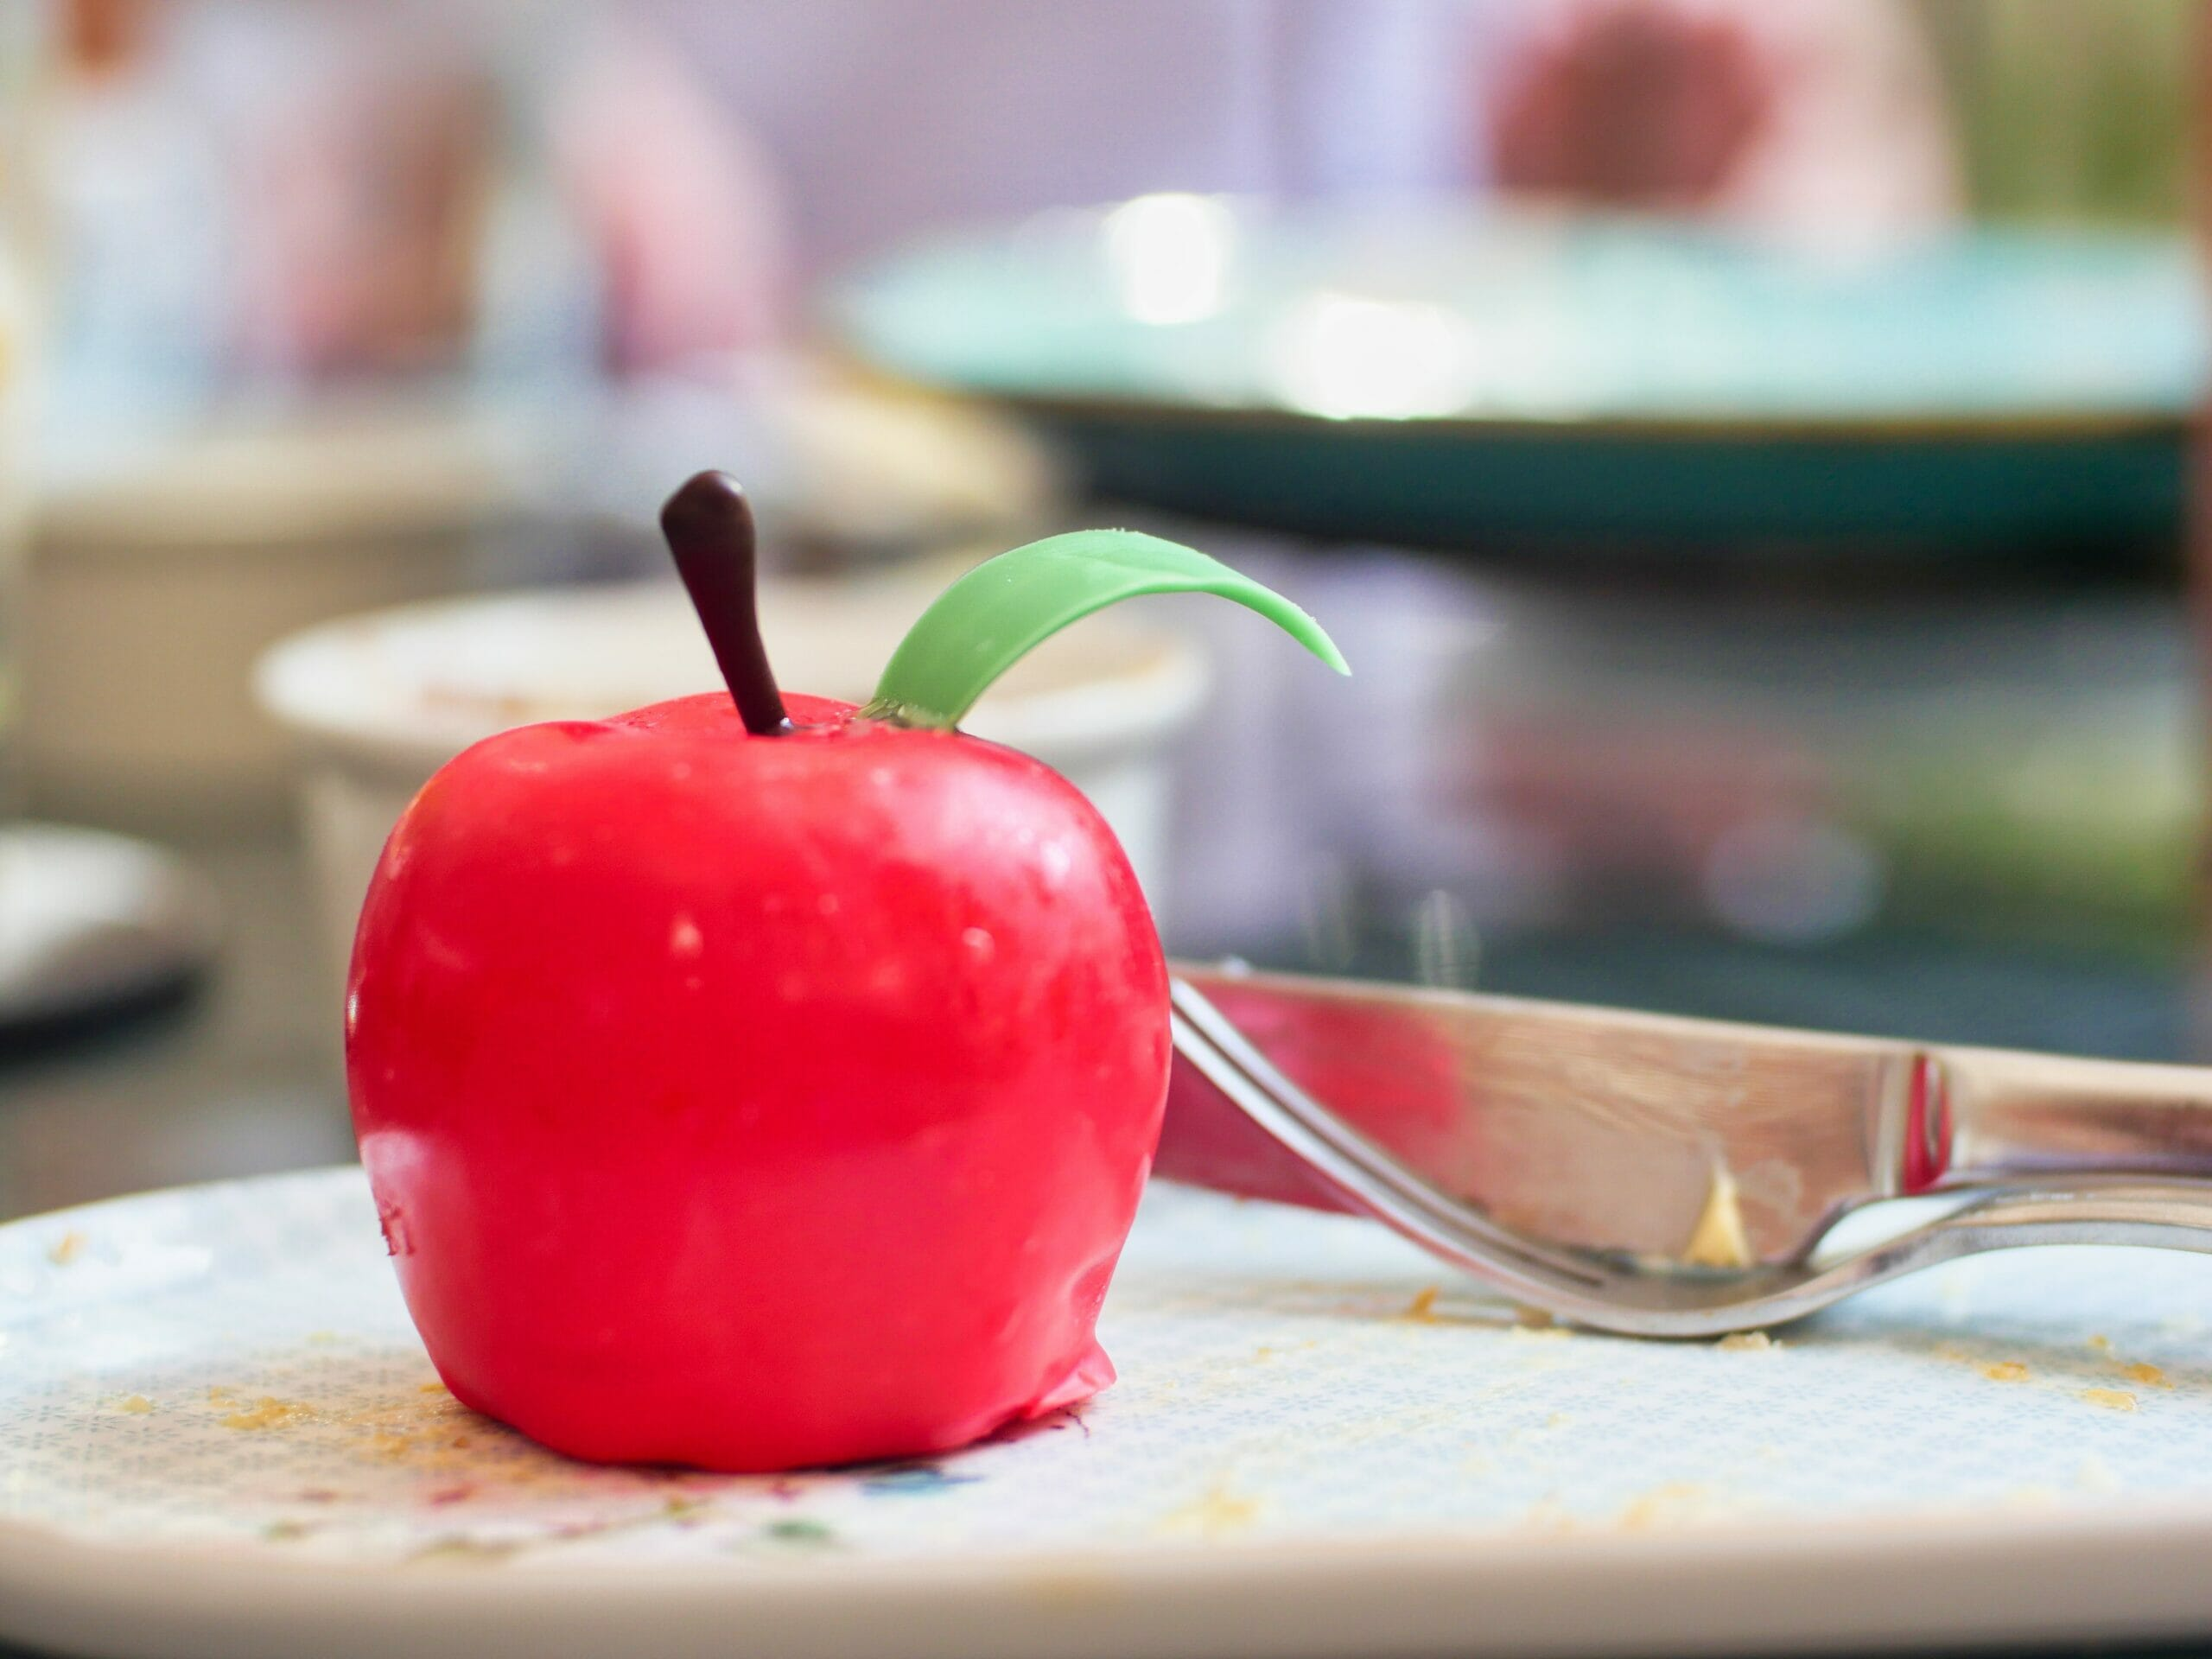 A dessert made to look like a red apple on a plate with a knife and fork